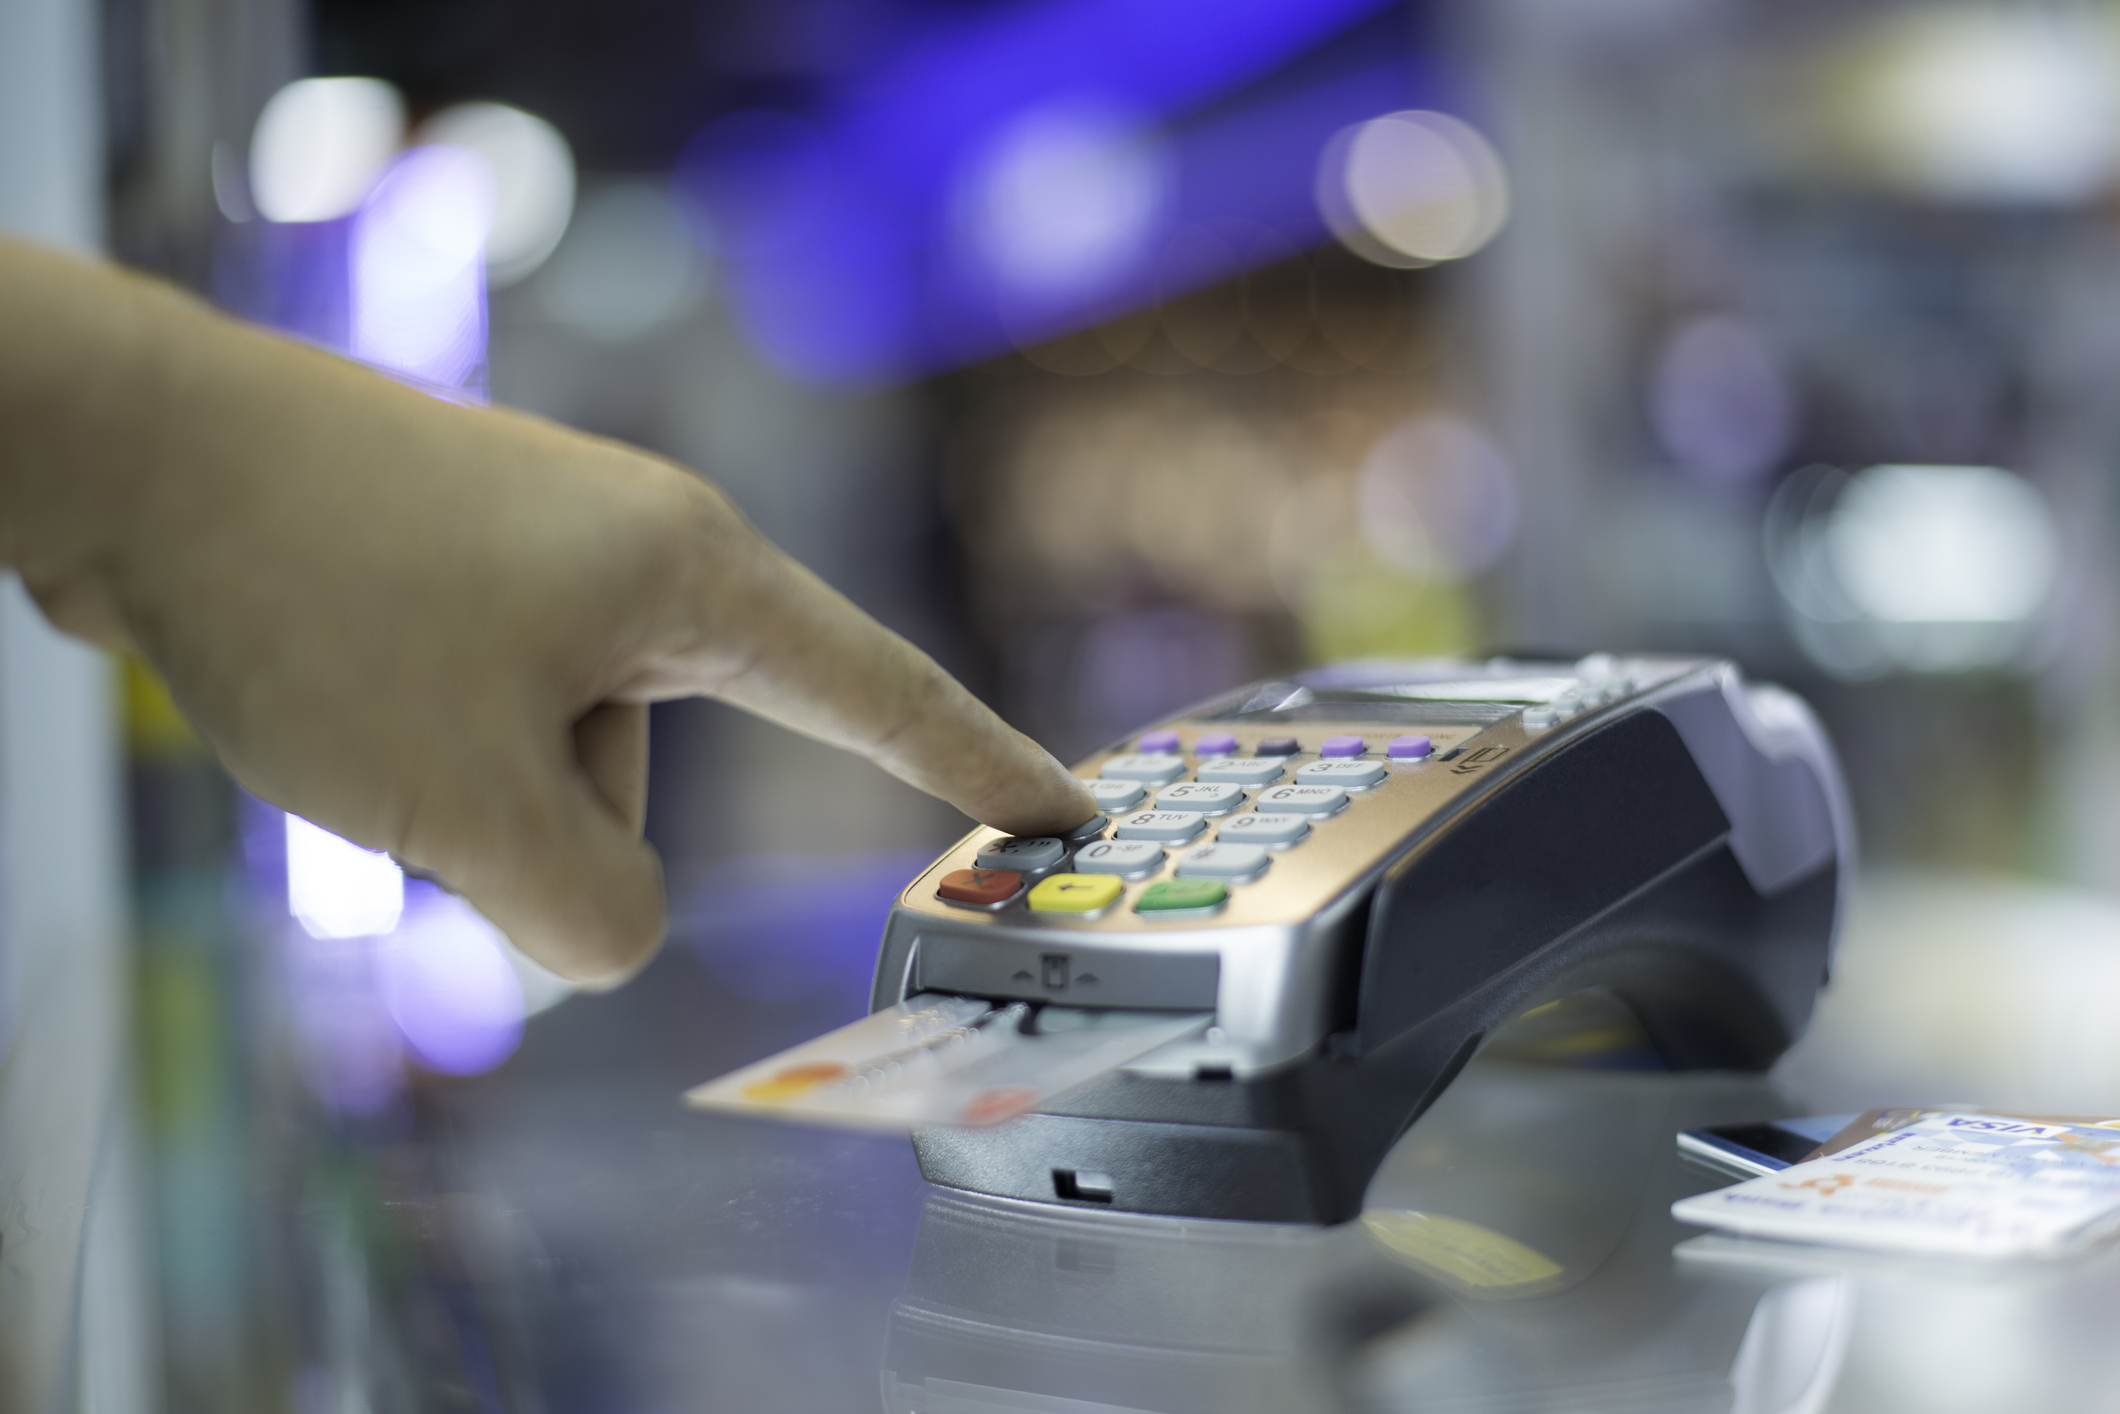 Credit card being used at point of sale register